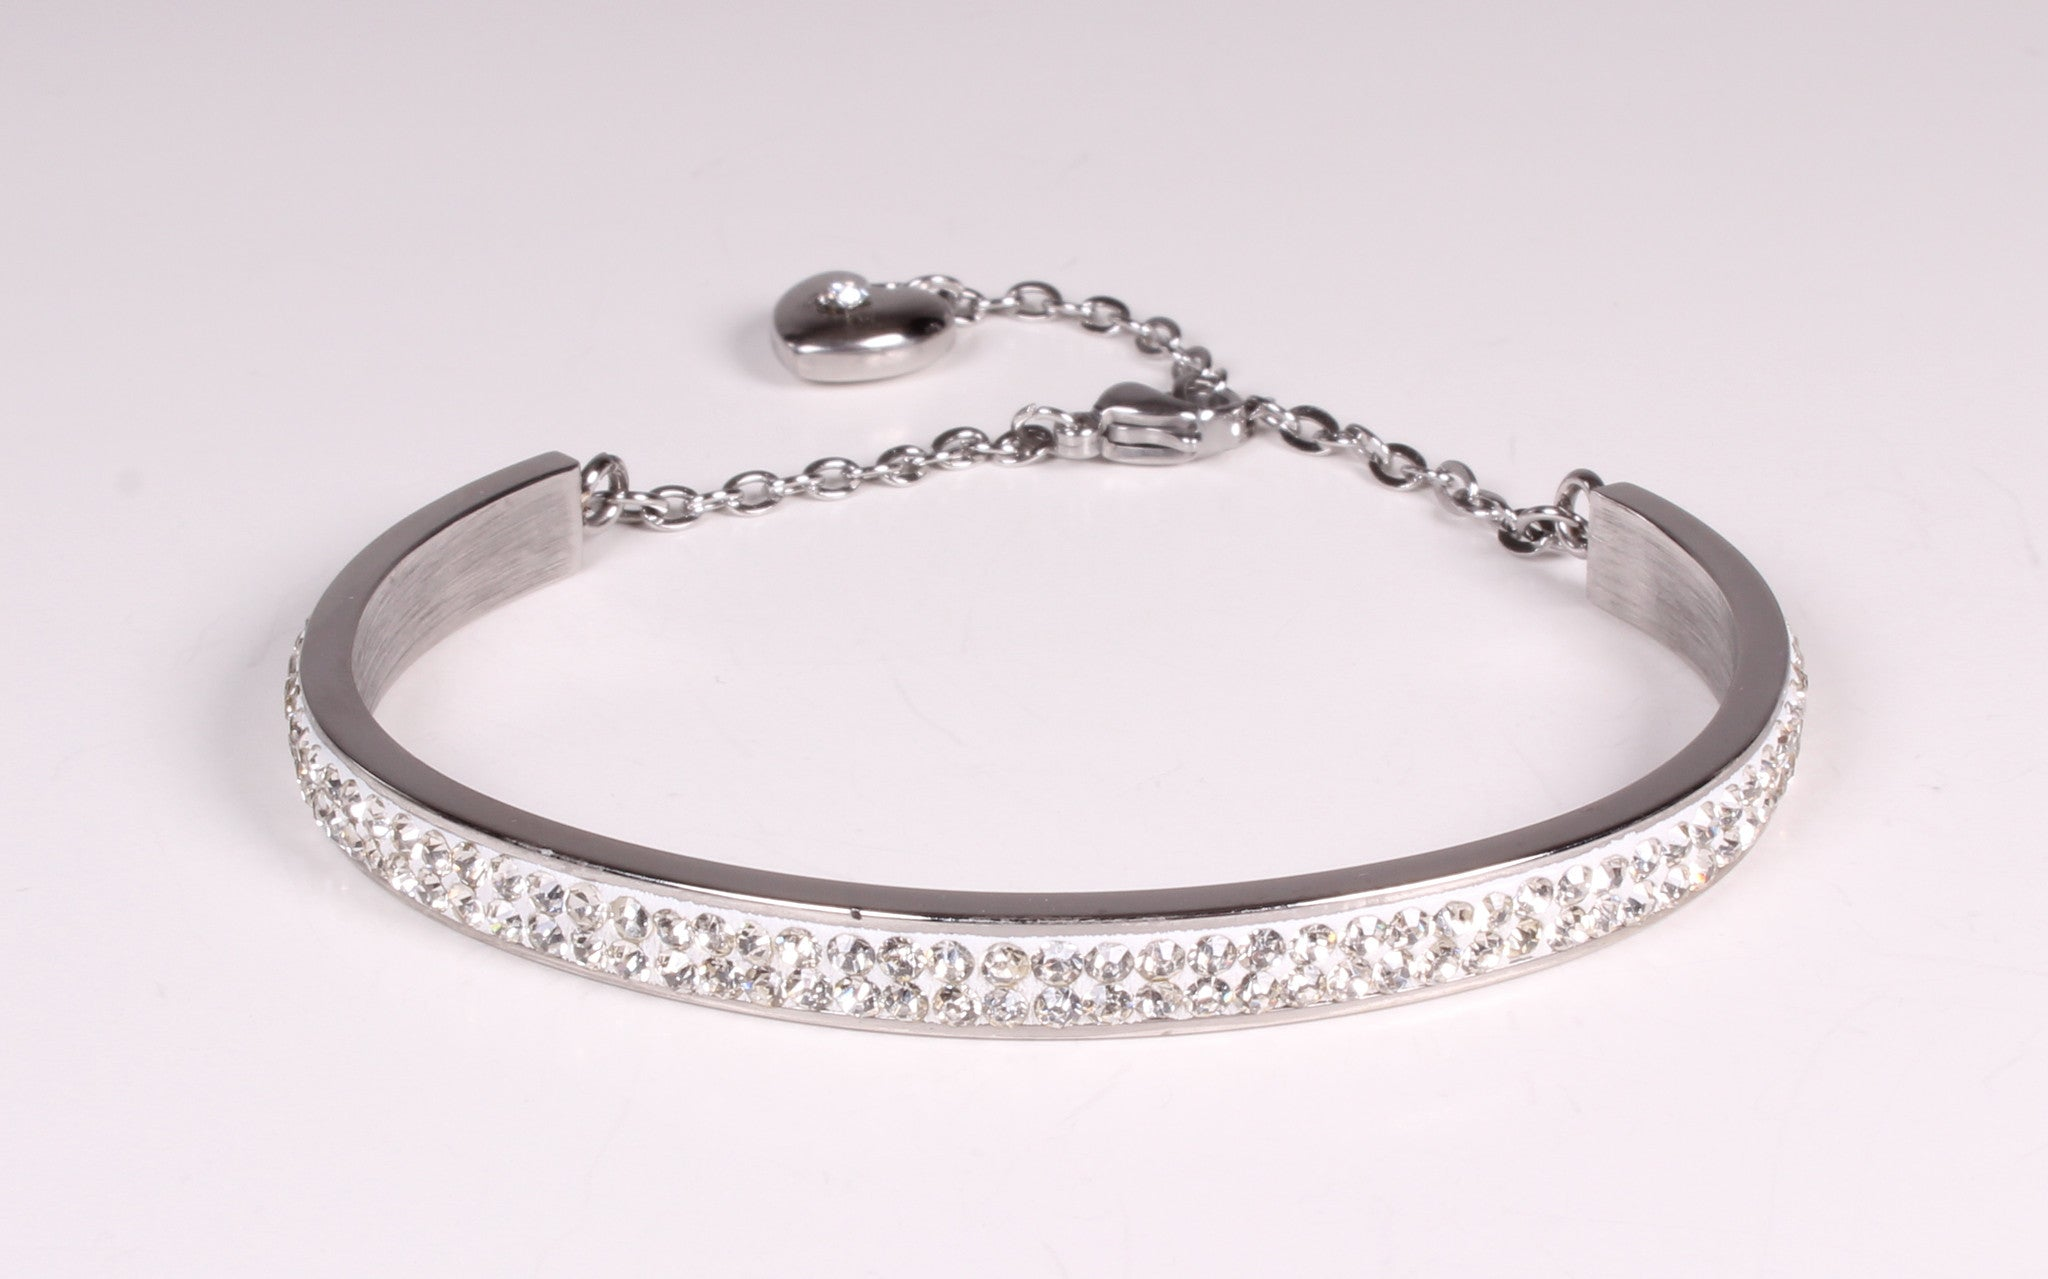 Rhinestone Bangle Bracelet with dangling Rhinestone Heart